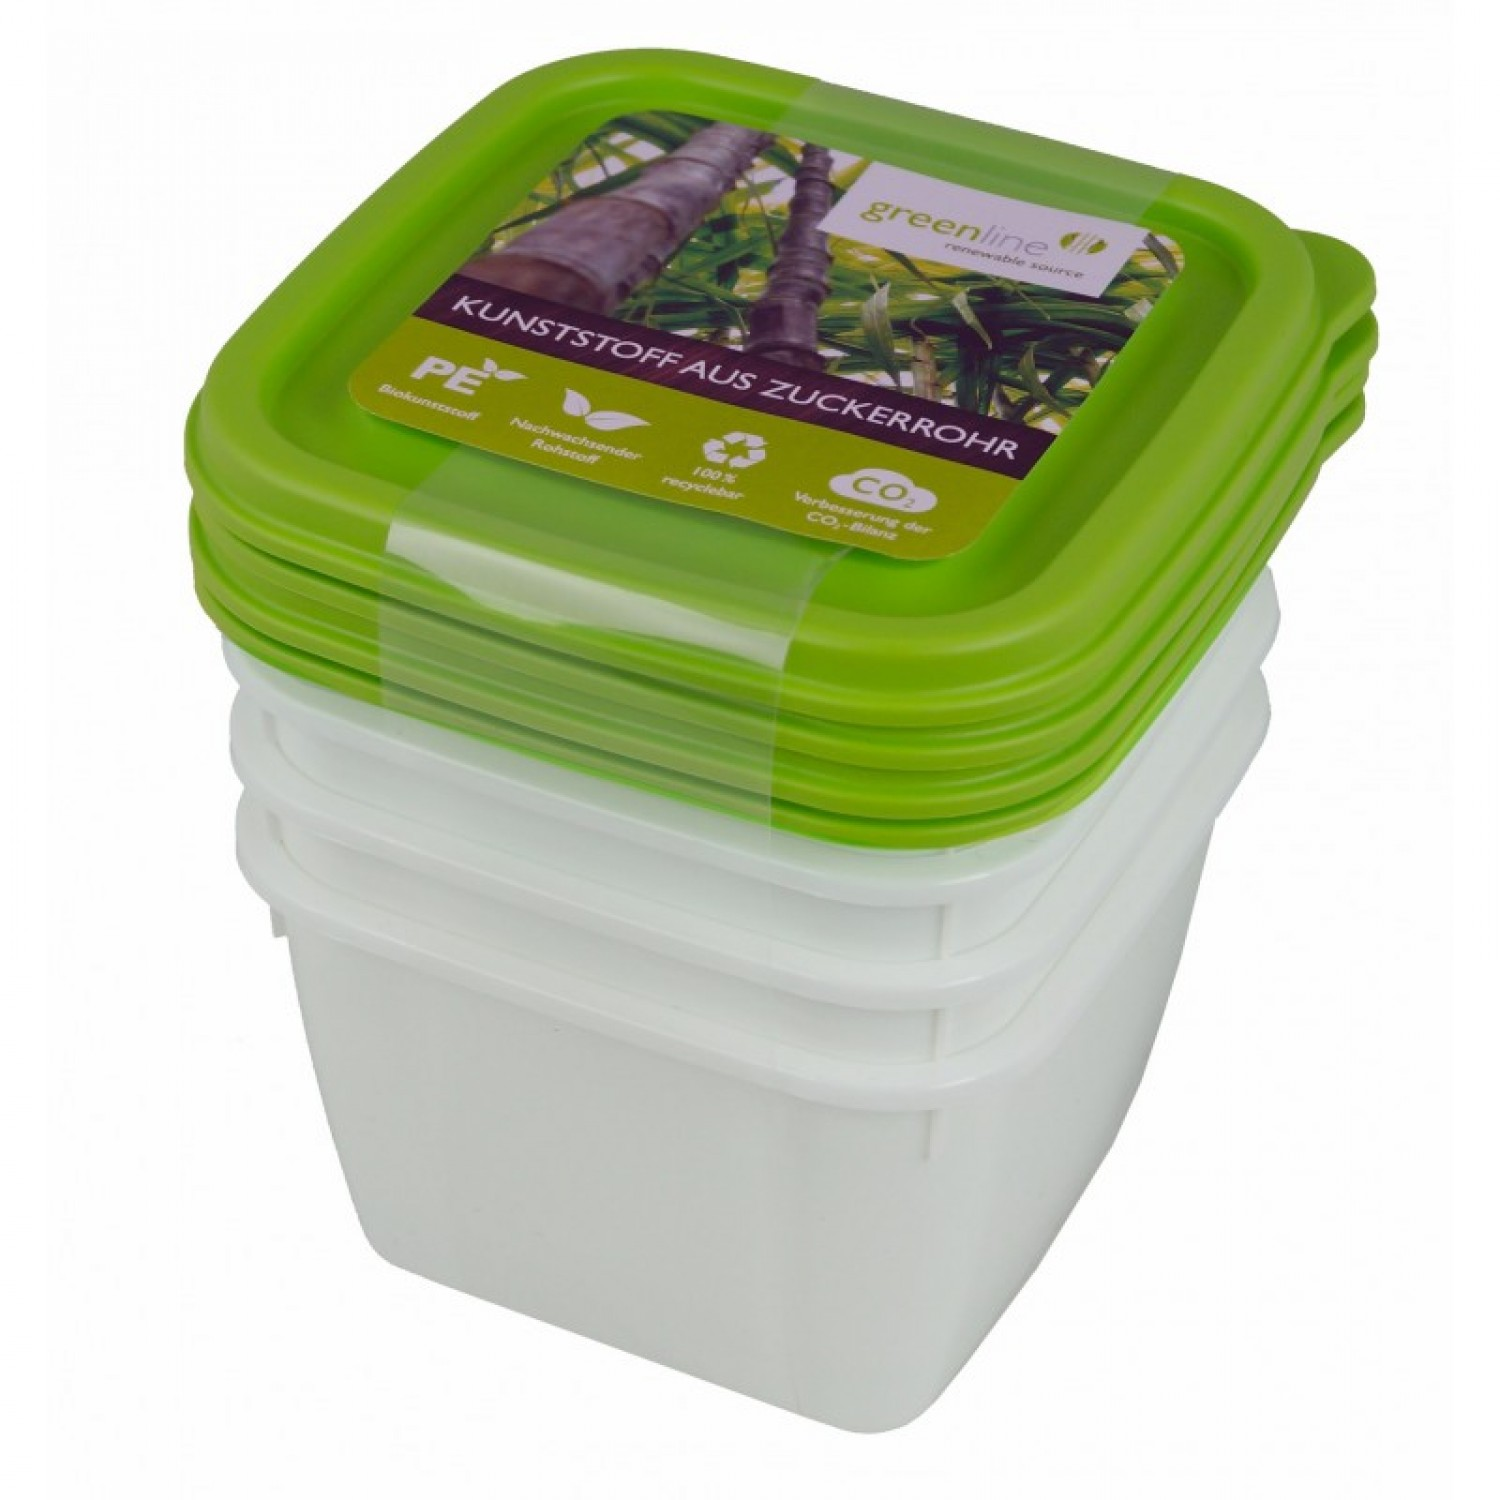 Greenline deep-freeze food container 0.5 l 4-part | Gies